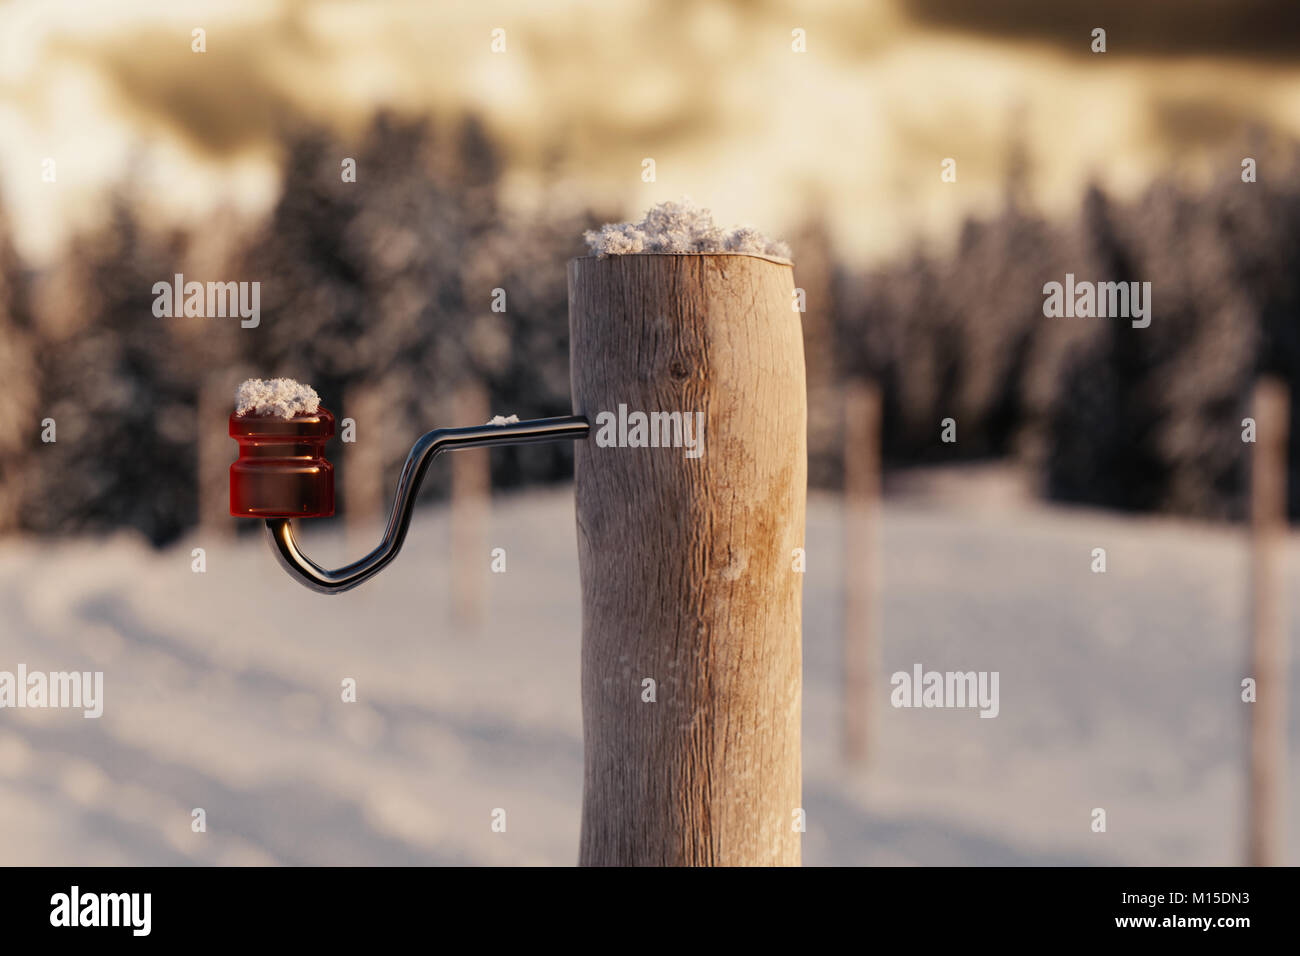 3d rendering of wooden post with red isolator in thw winter season in evening sunshine - Stock Image